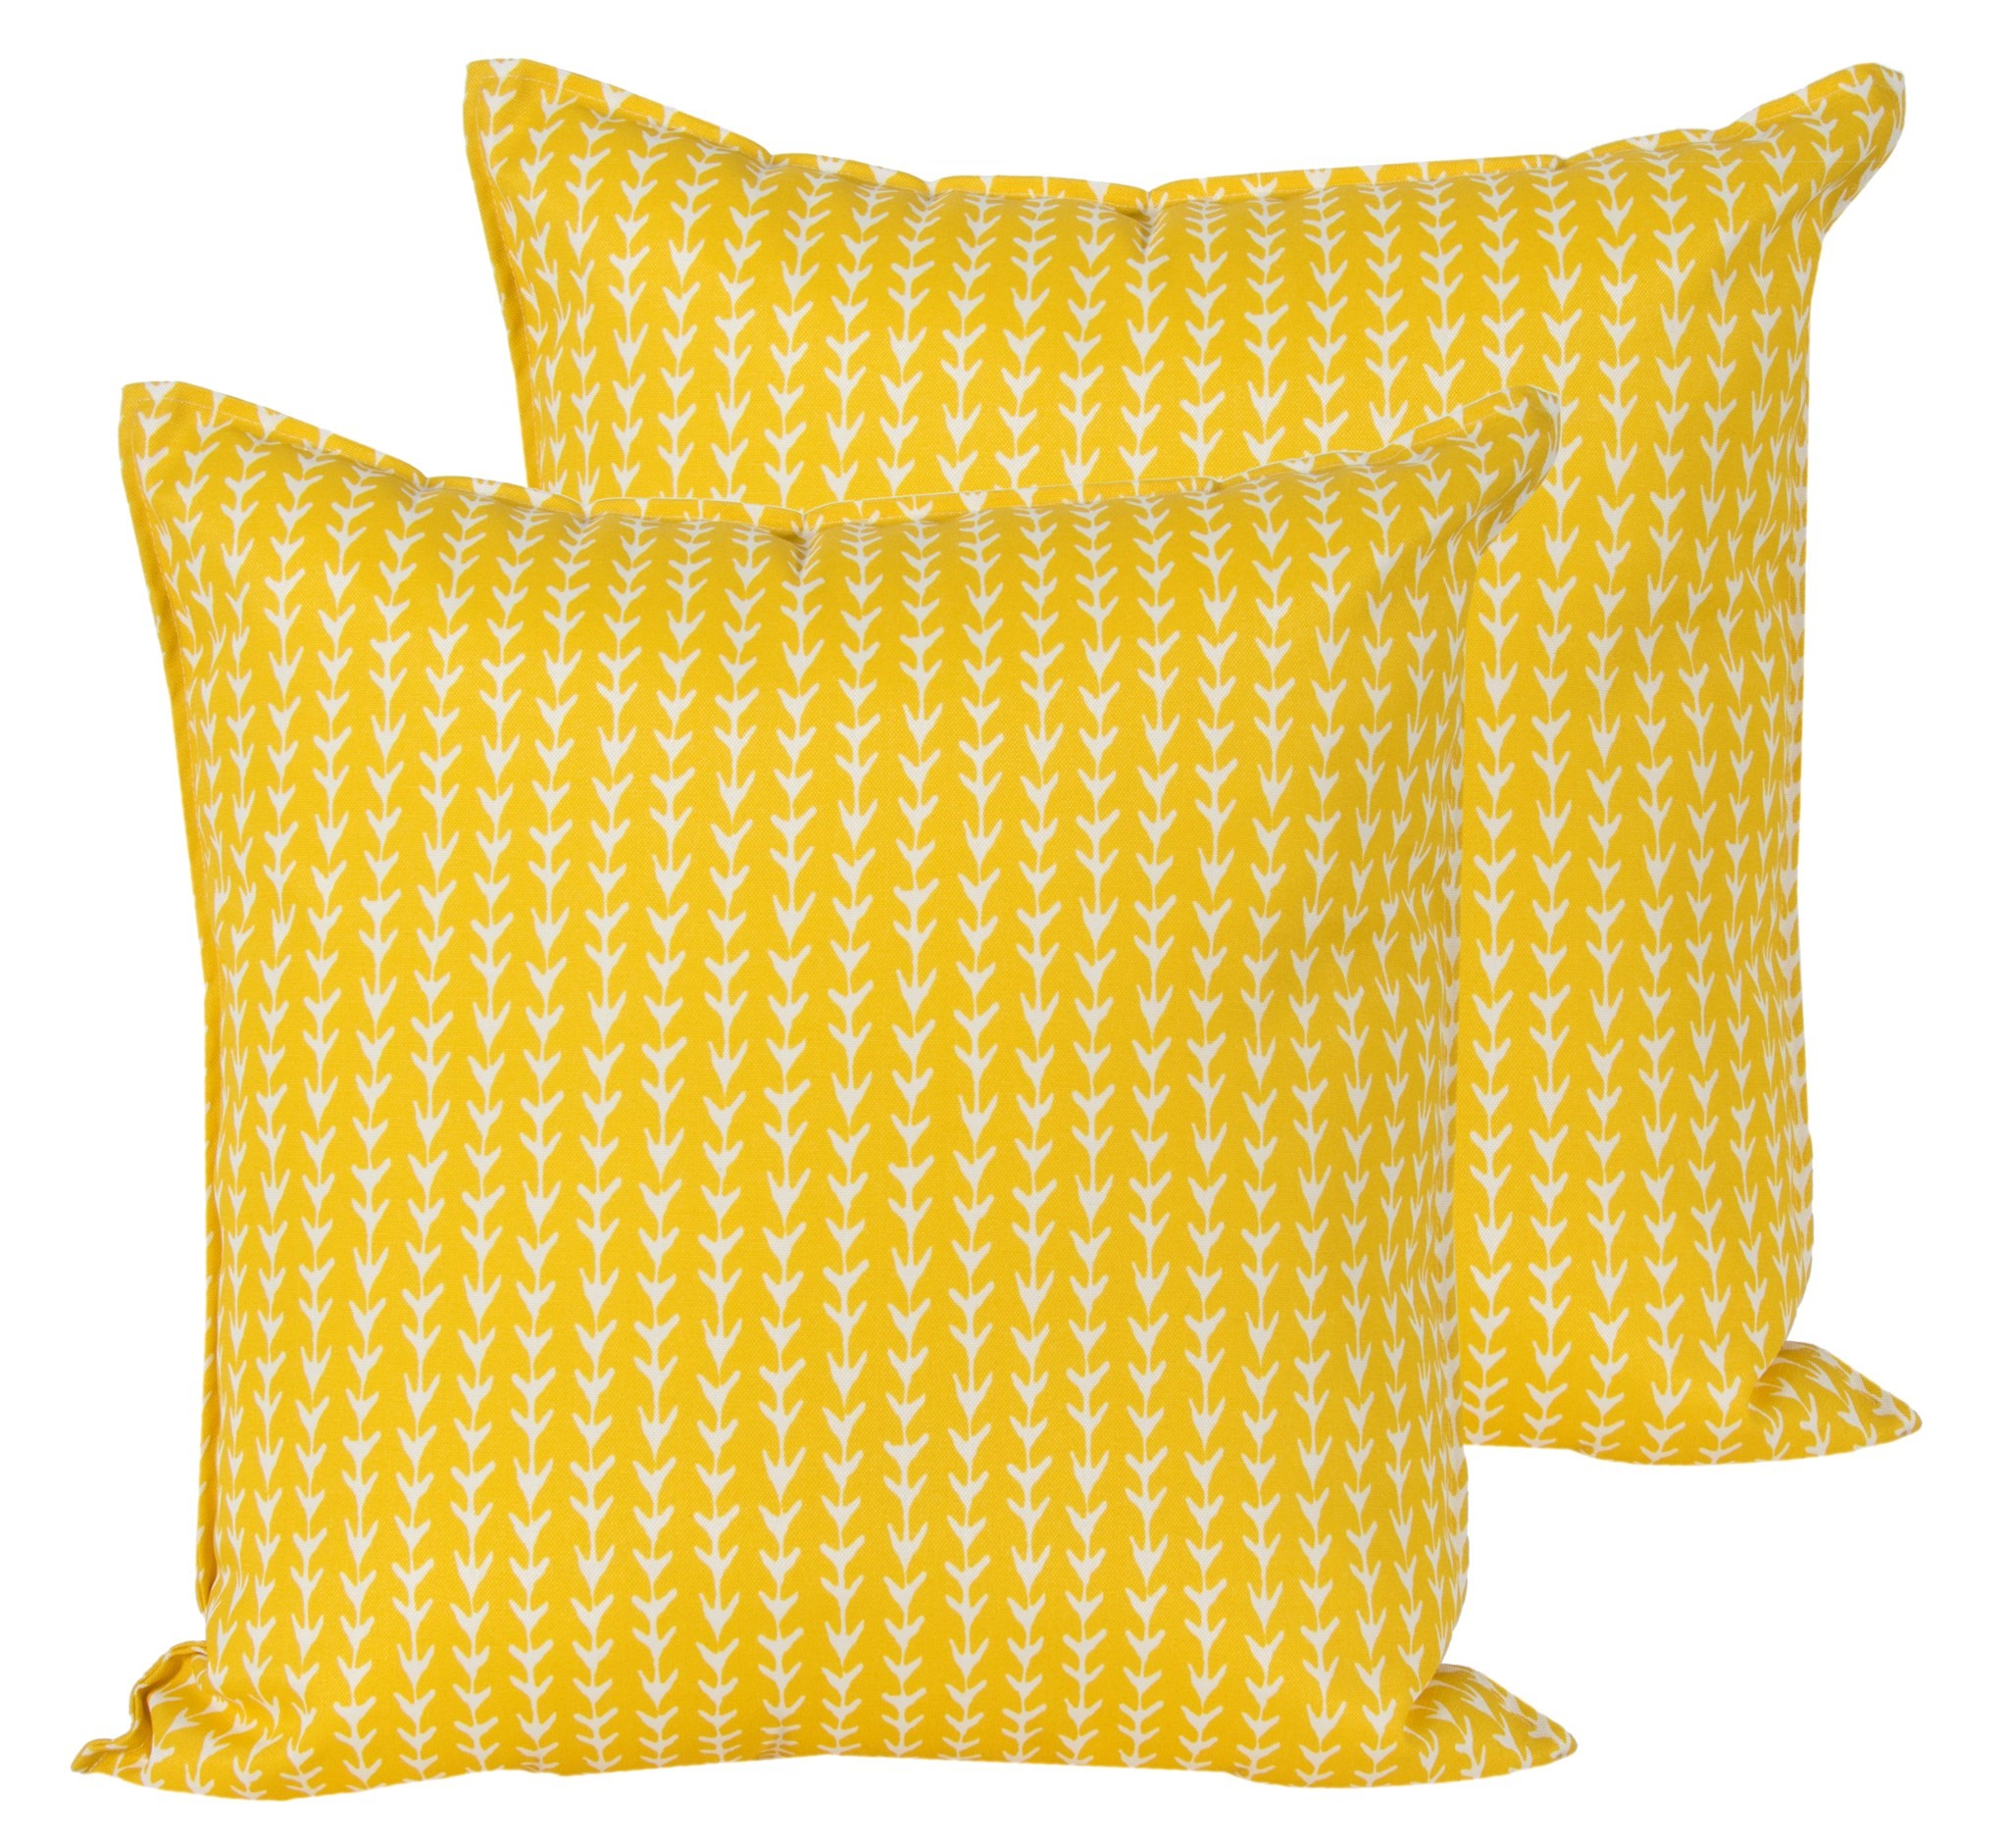 20x20 Outdoor Pillow by Ninety-Five & Co, Amanda's House Of Elegance  (Special Order Only - Minimum Qty 2)    ($46.95 each)